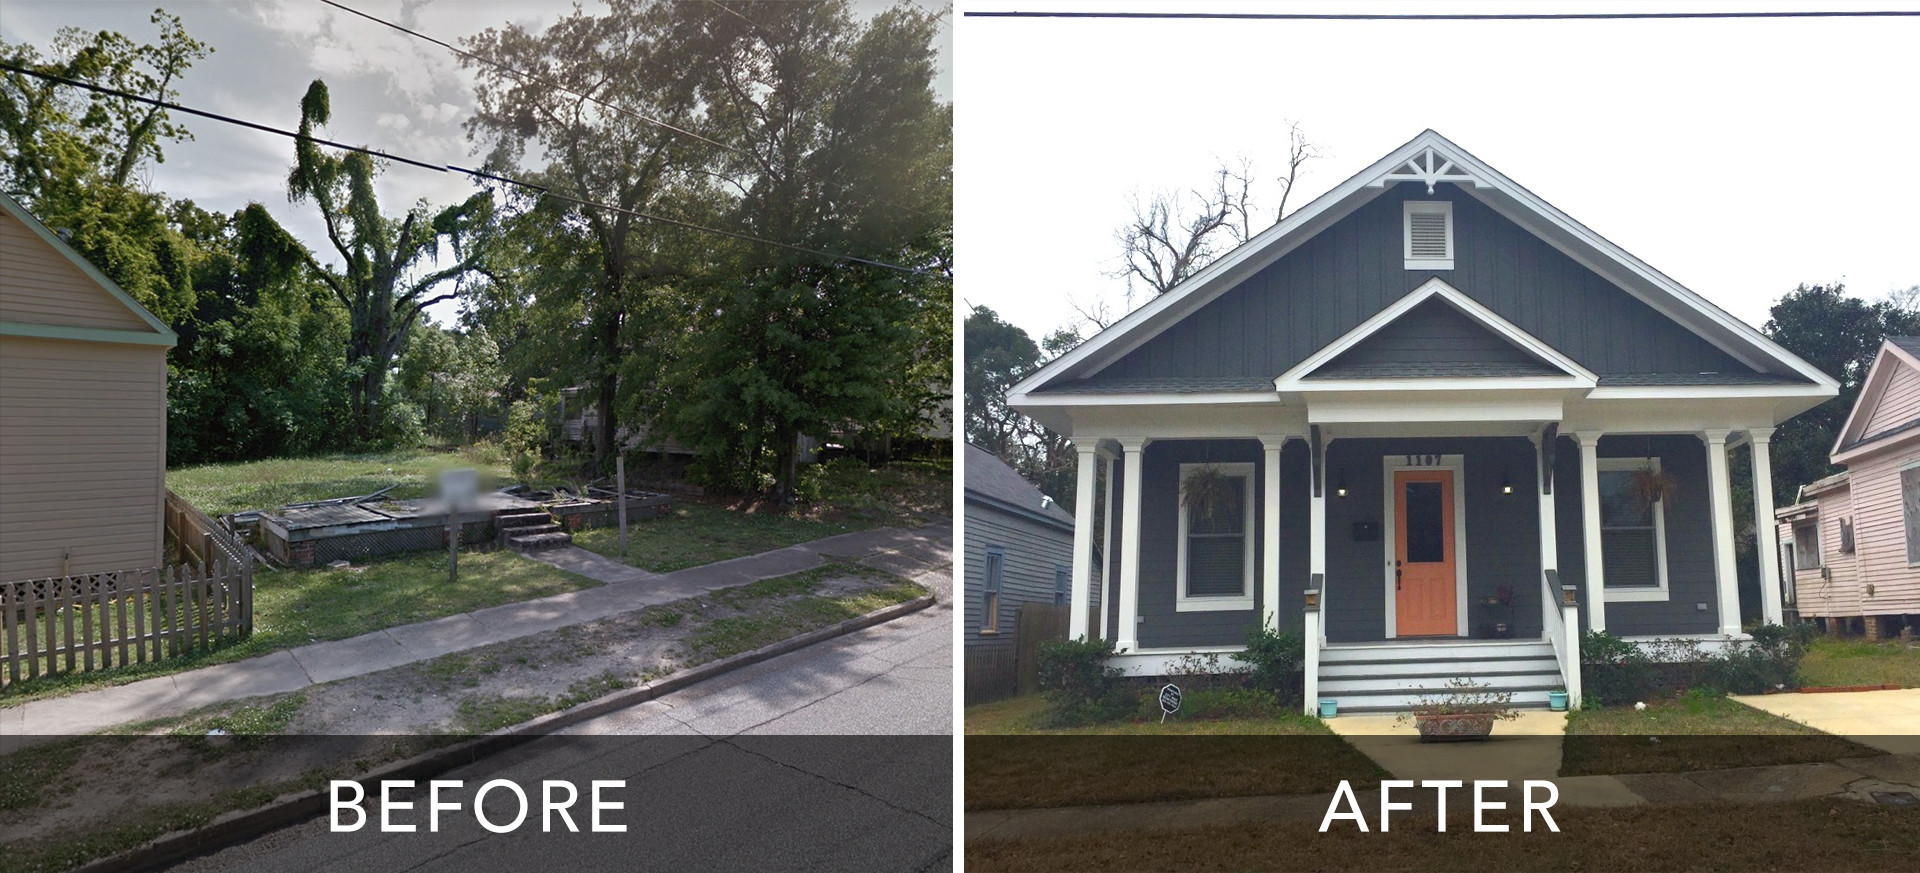 RM_Website_BeforeAfter_Slide_1107Elmira.